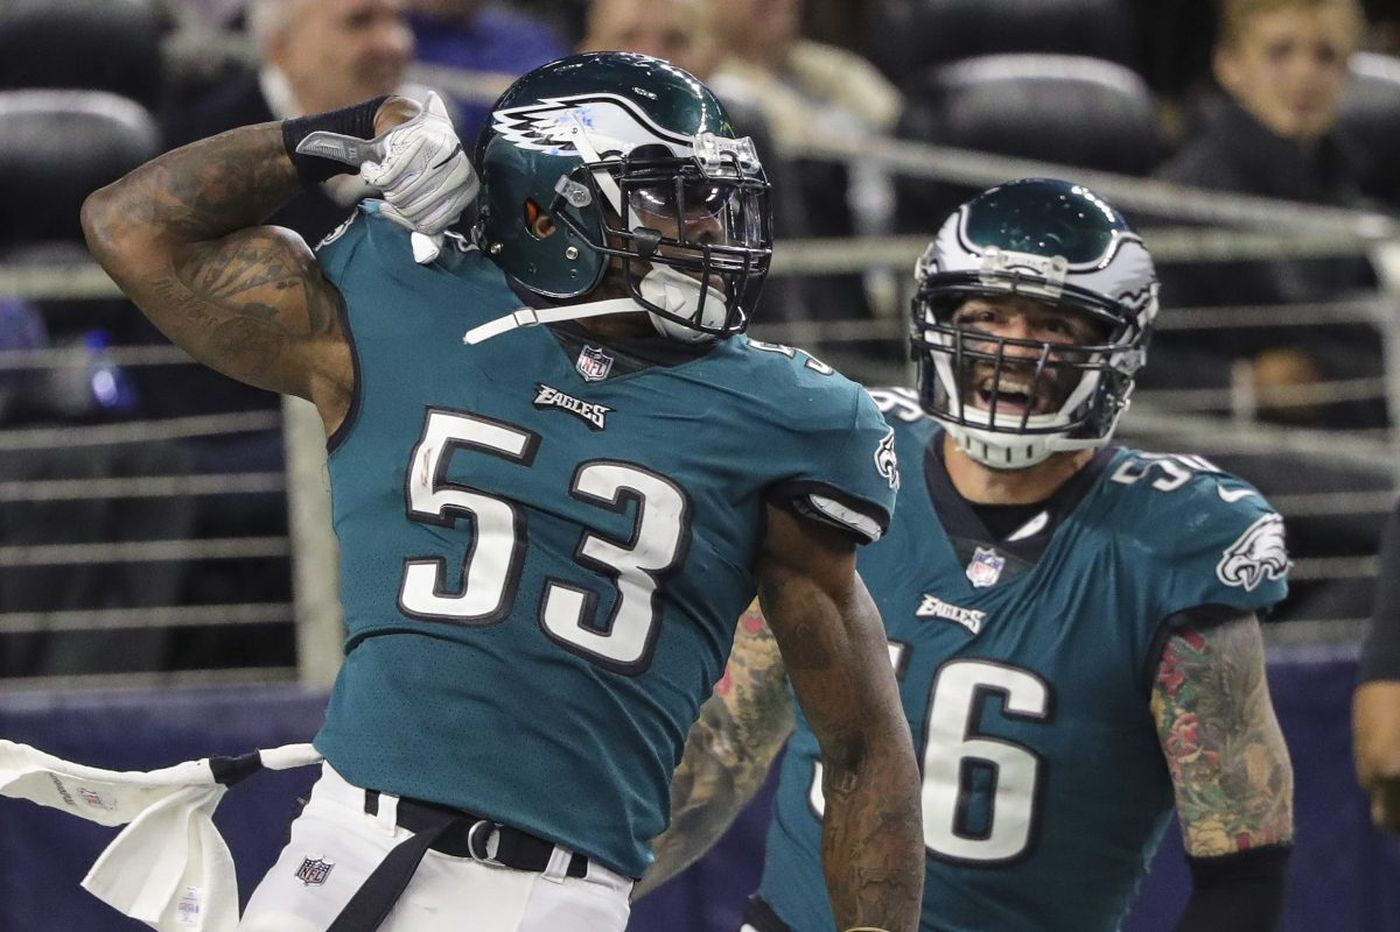 Eagles 37, Cowboys 9 - as it happened